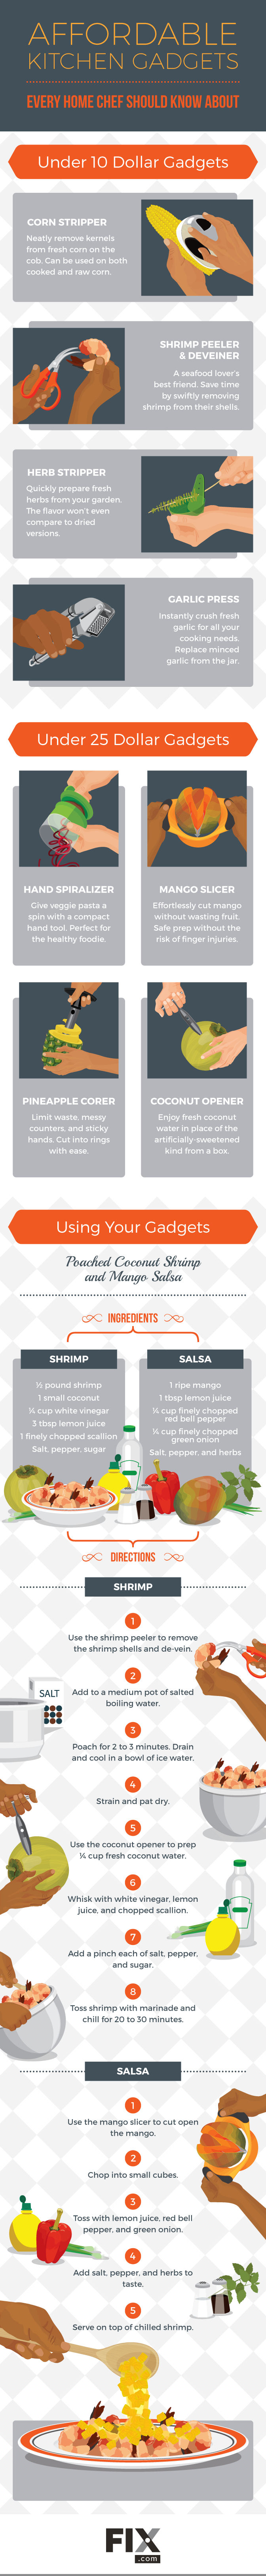 Affordable Kitchen Gadgets Every Home Chef Should Know About #infographic